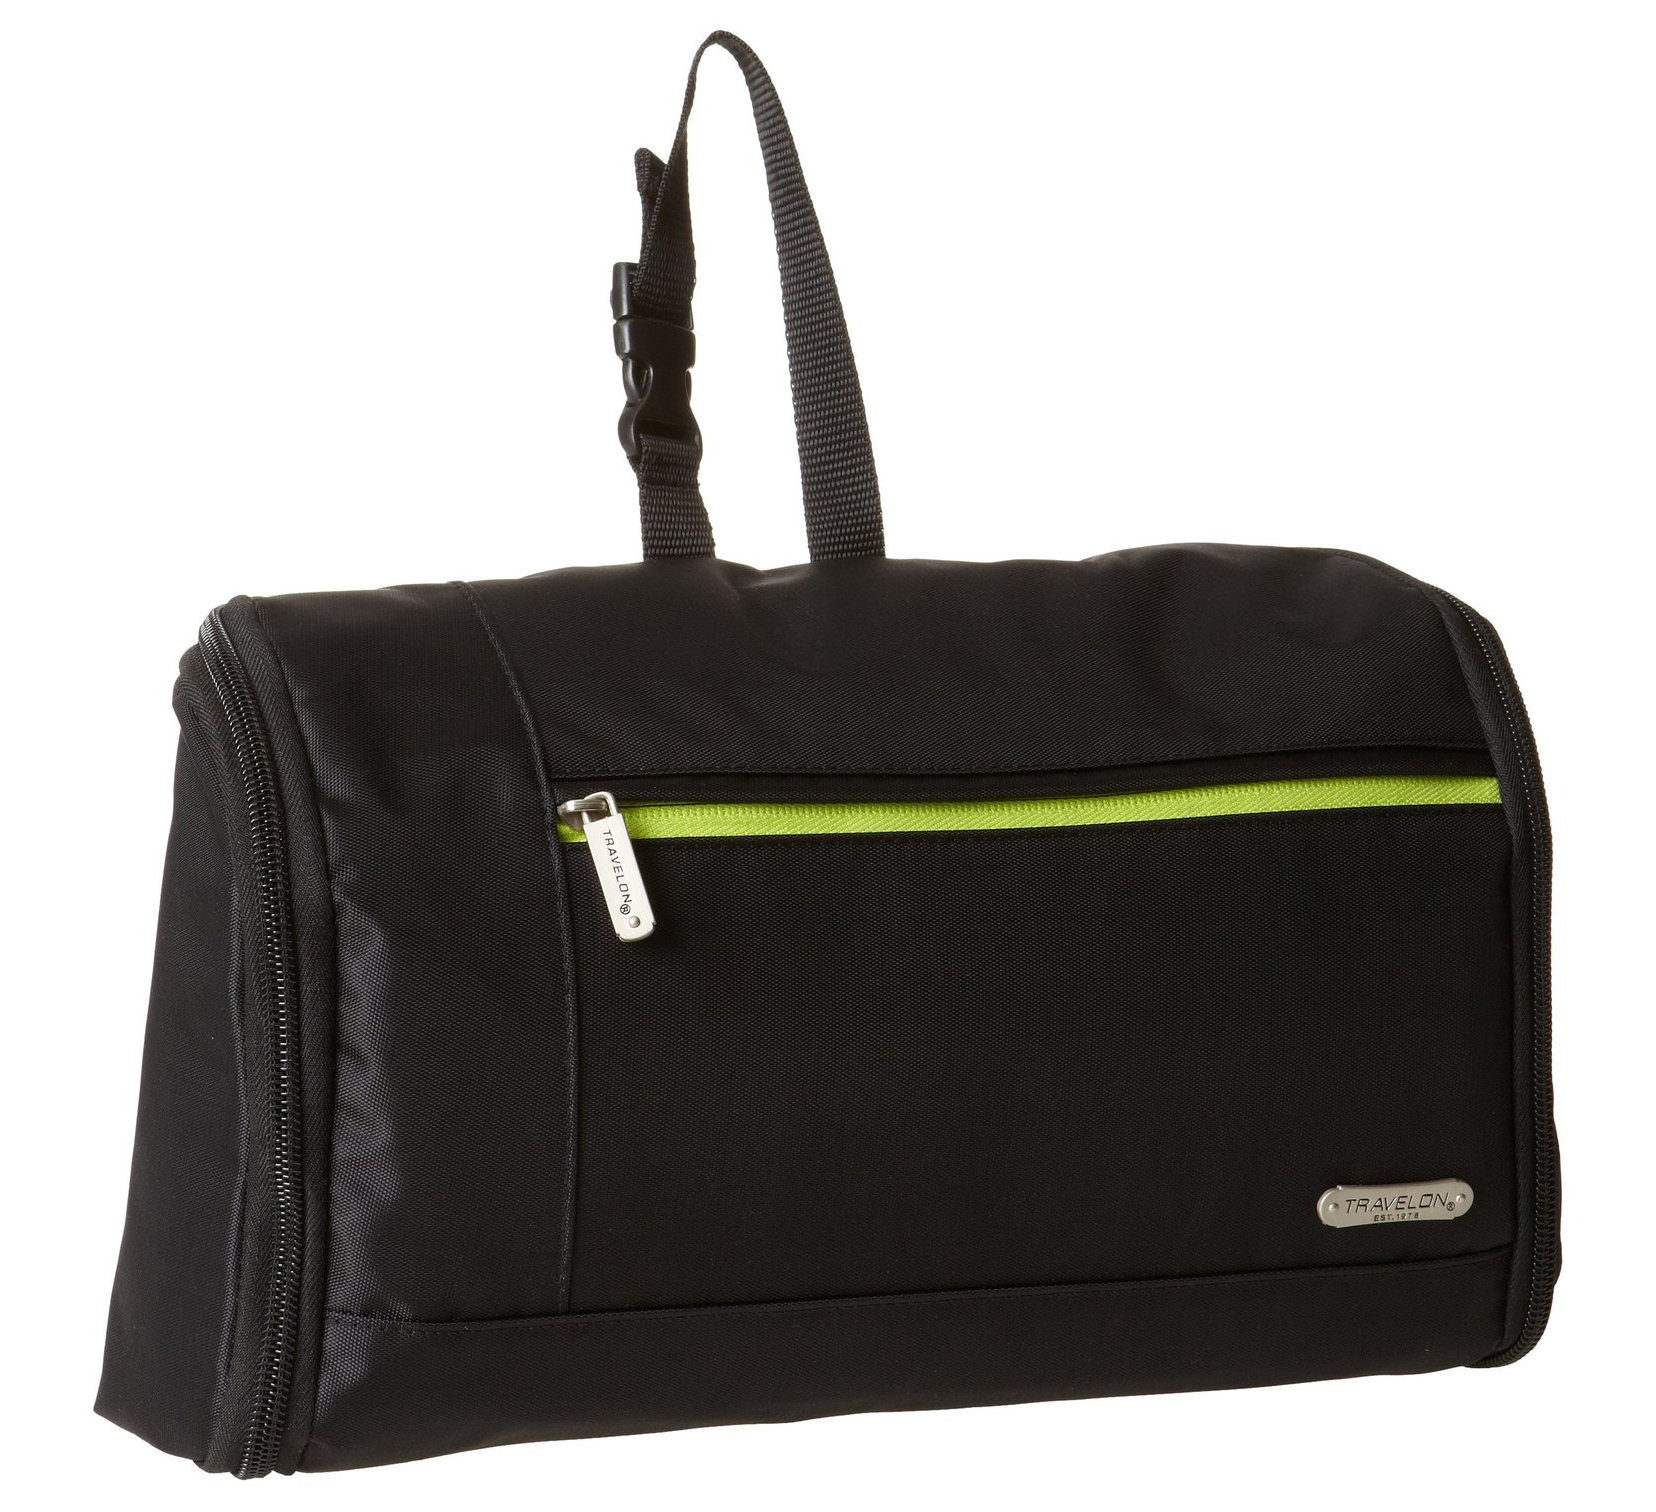 Travelon Flat Out Toiletry Kit